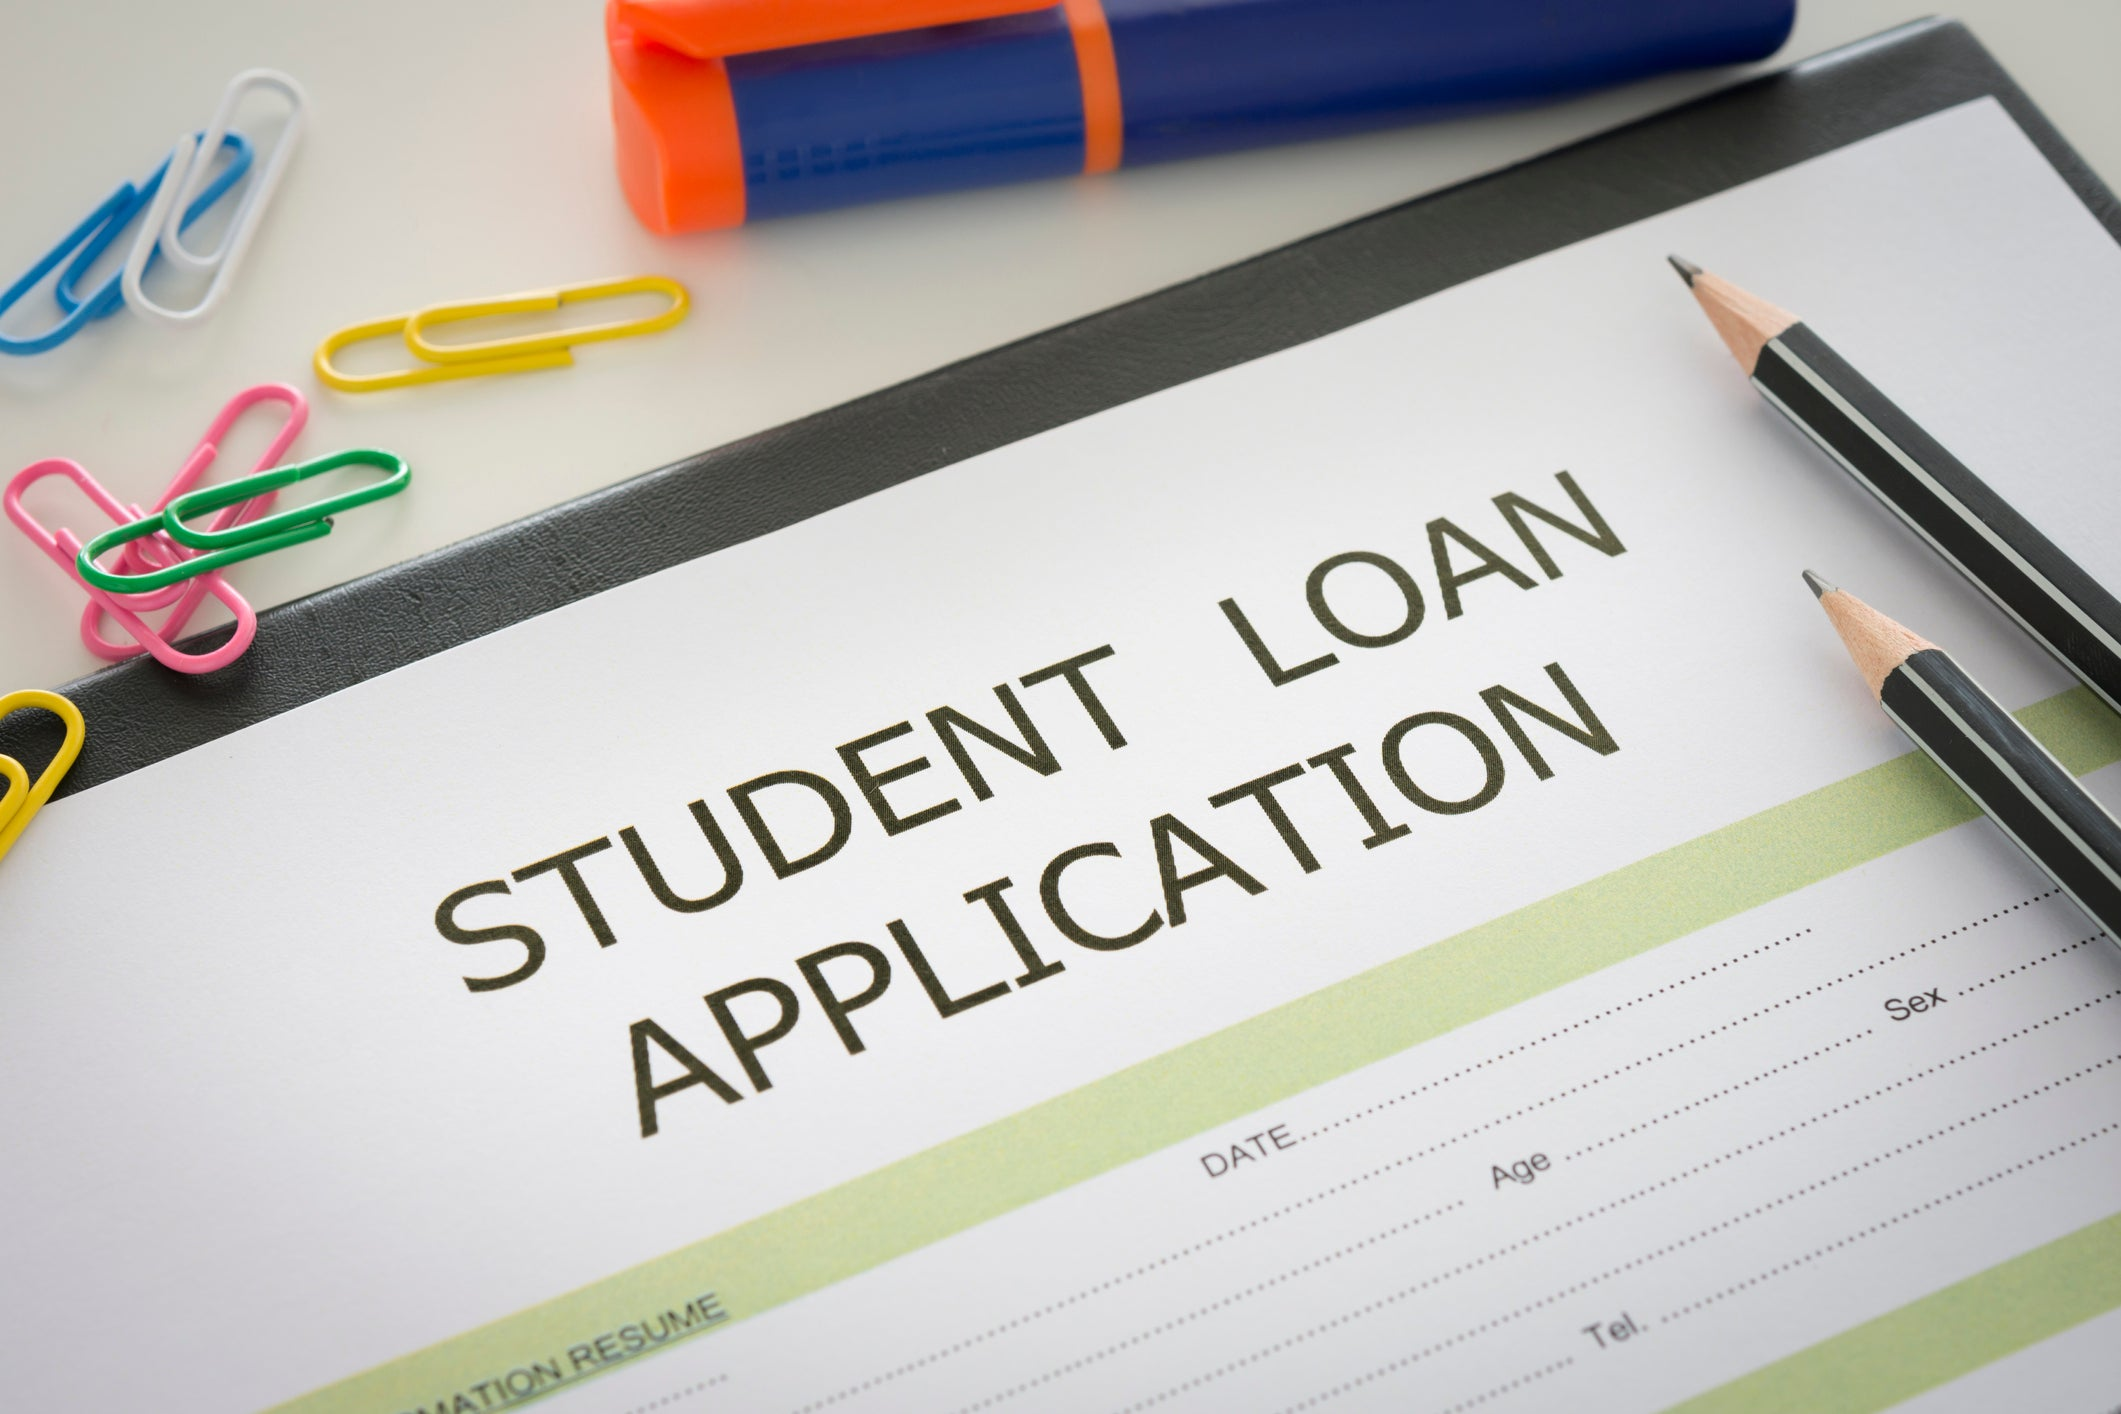 Student loan application with pencils and paperclips on top of it.